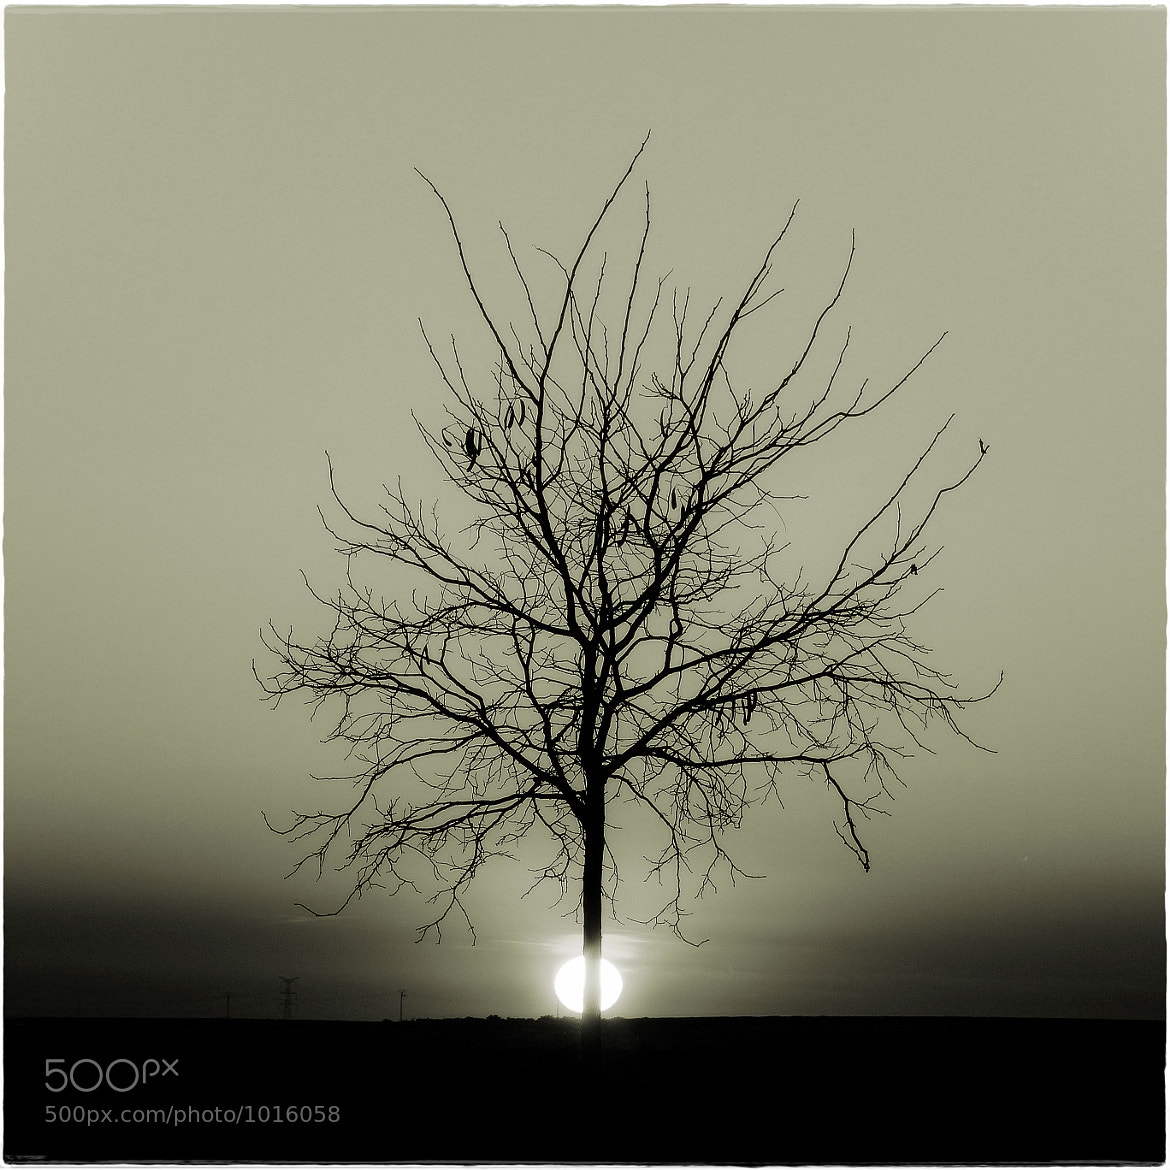 Photograph The Tree by Luis Mariano González on 500px